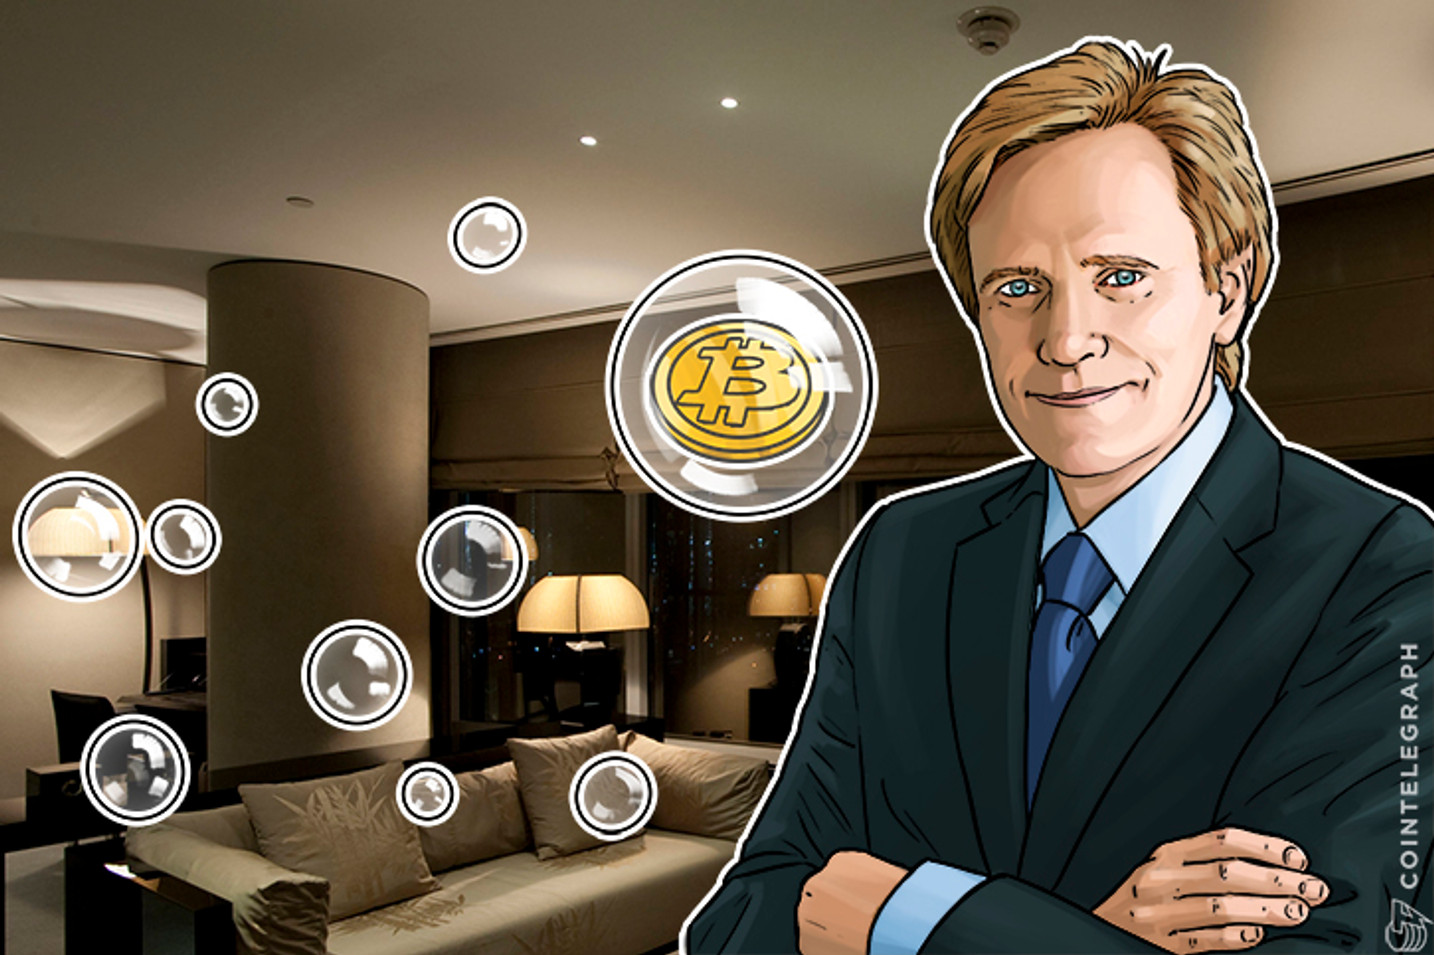 Keep Bitcoin For Impending Market Crash: Prominent Gold Investor